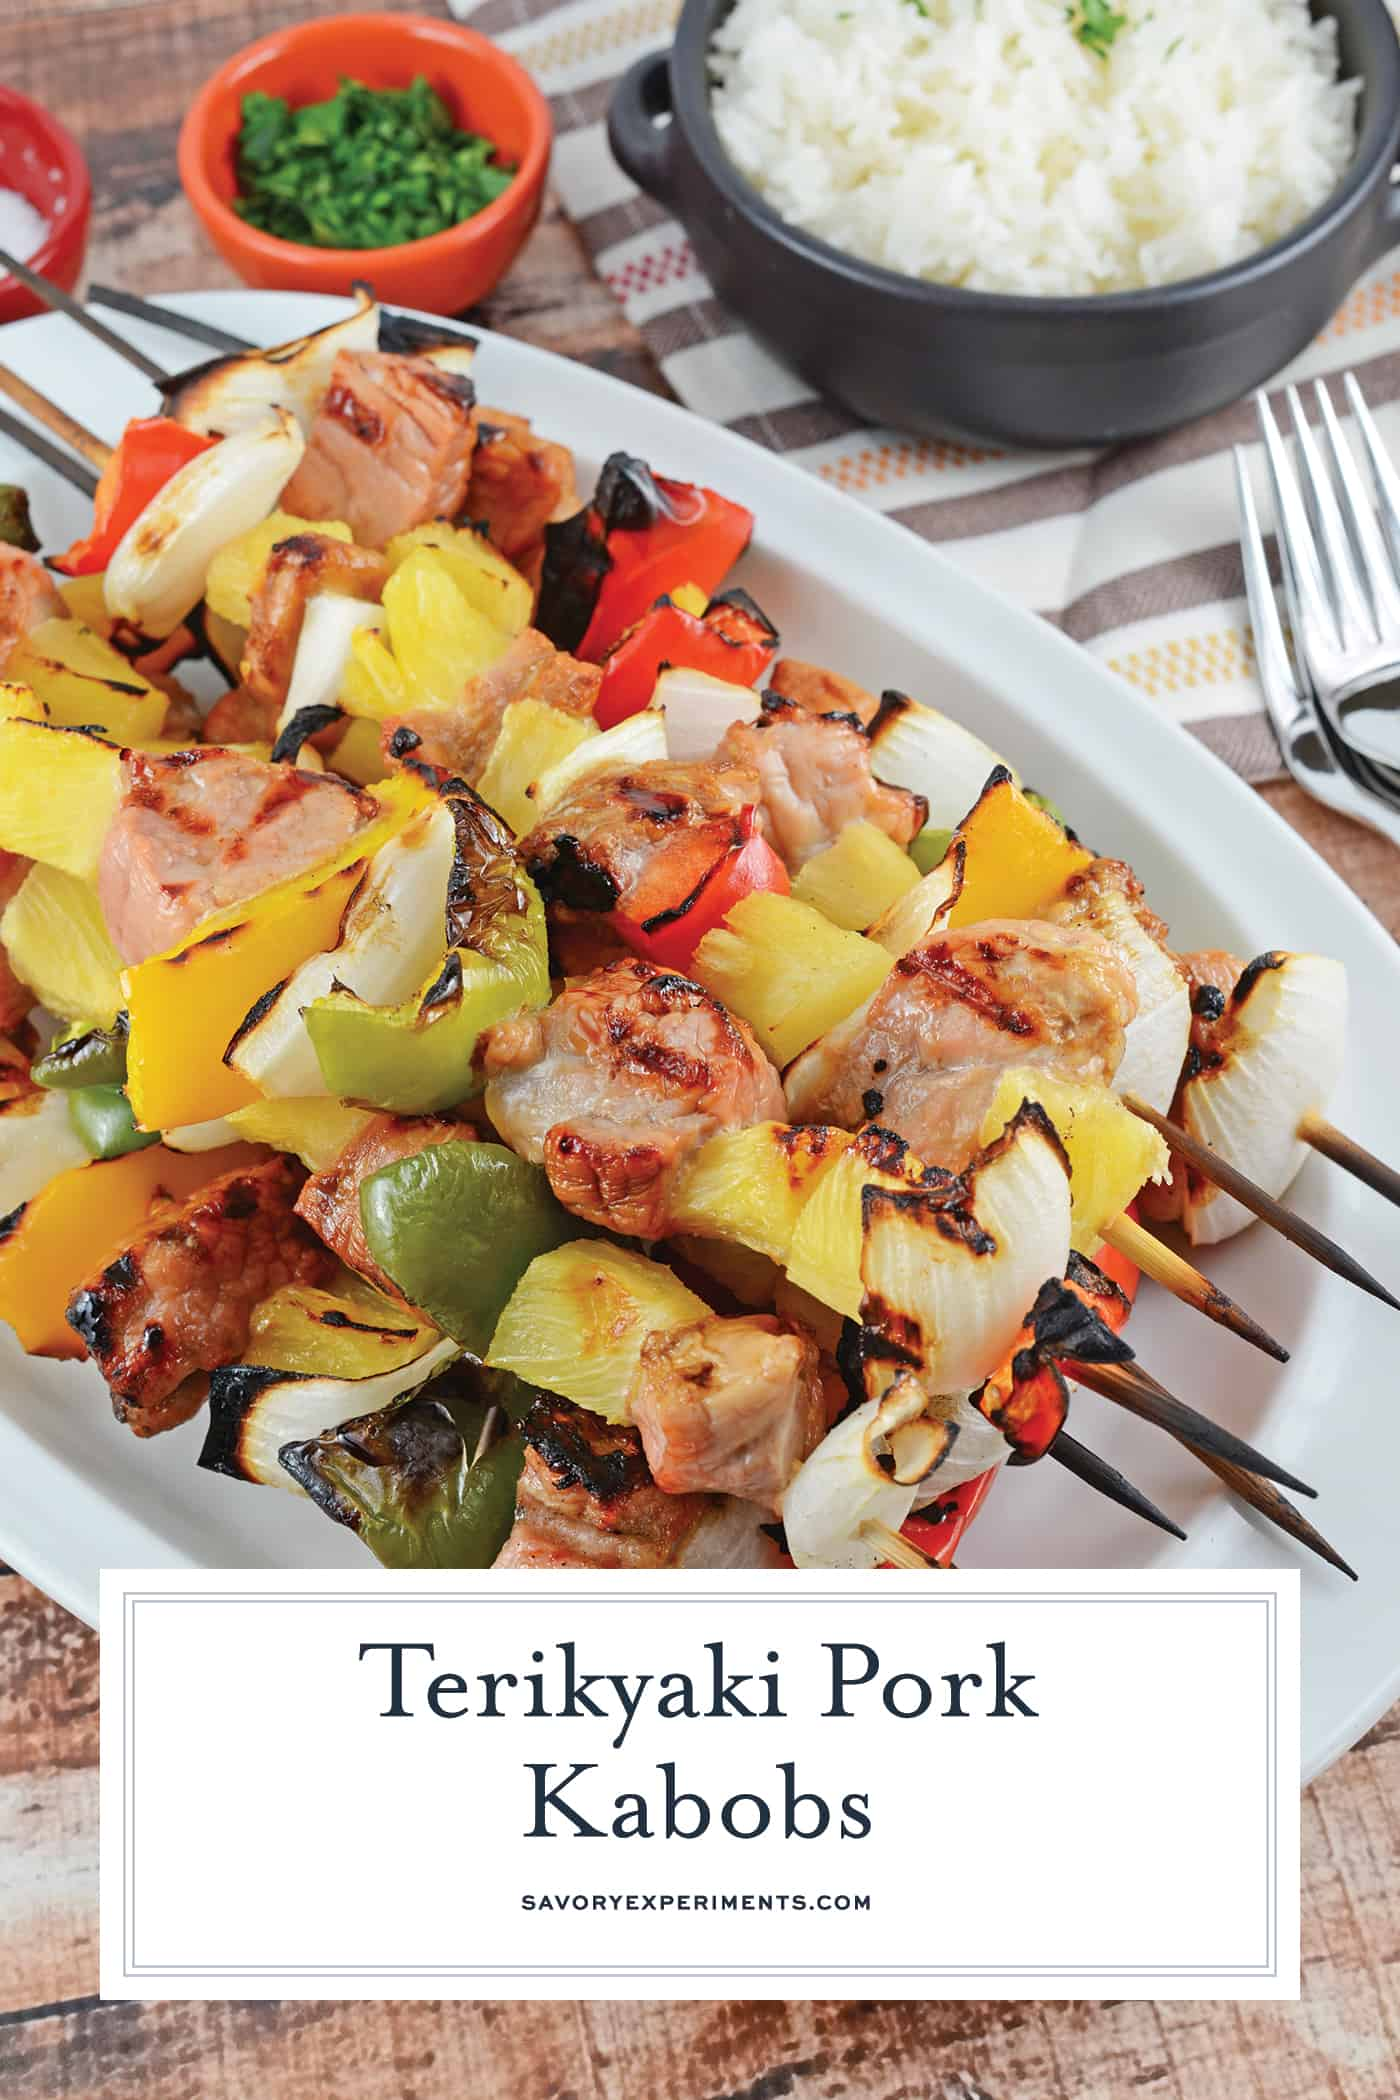 Teriyaki Pork Kabobs are an easy kabob recipe using marinated pork tenderloin paired with pineapple, bell pepper and sweet onion. Ready in 30 minutes! #teriyakipork #kabobrecipes www.savoryexperiments.com